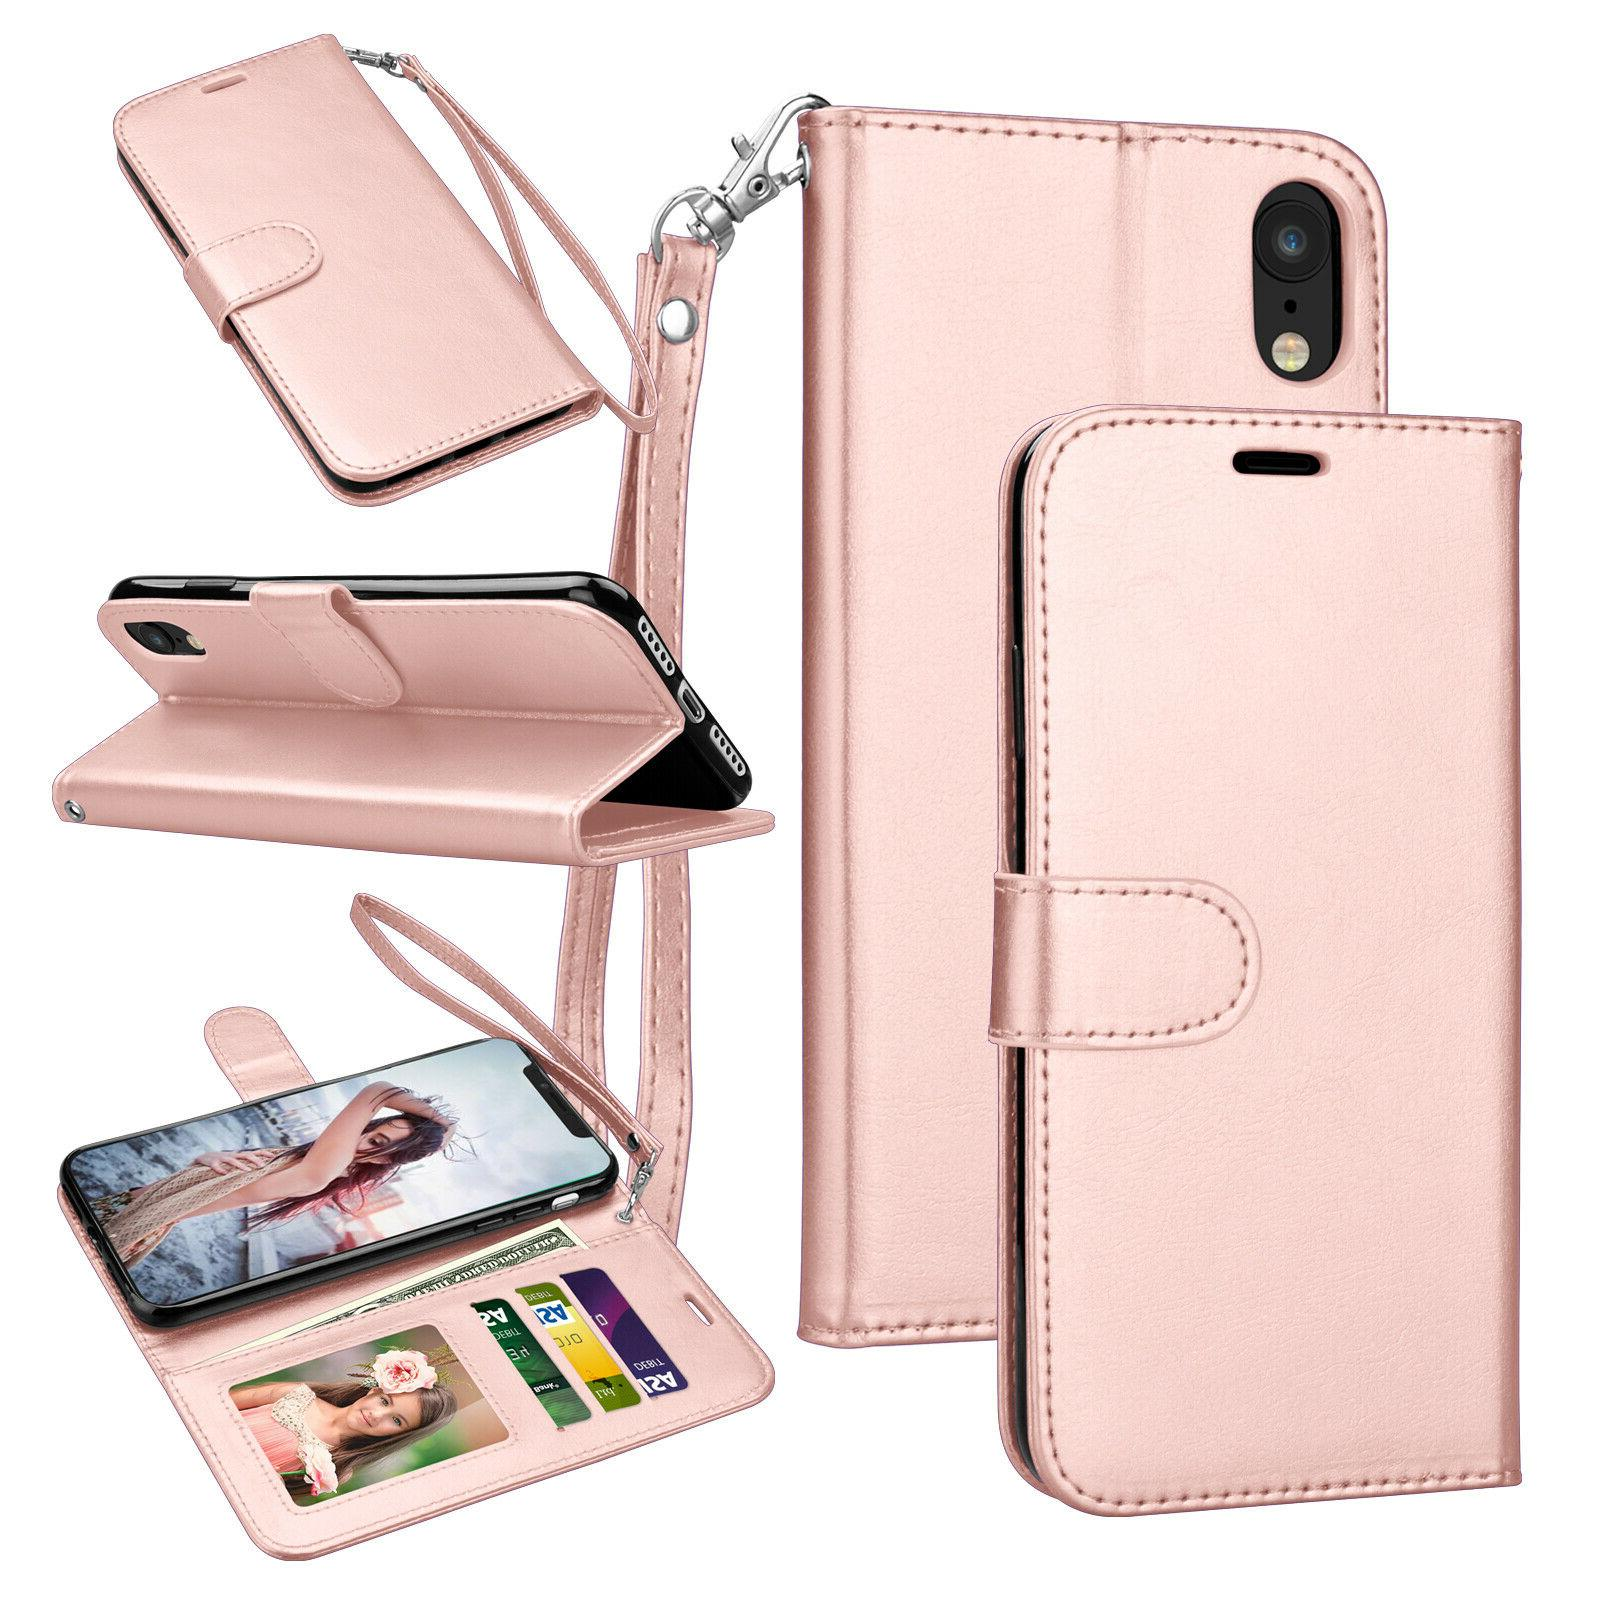 For X,XR,XS Max,6,6S,7,8 Plus Leather Card